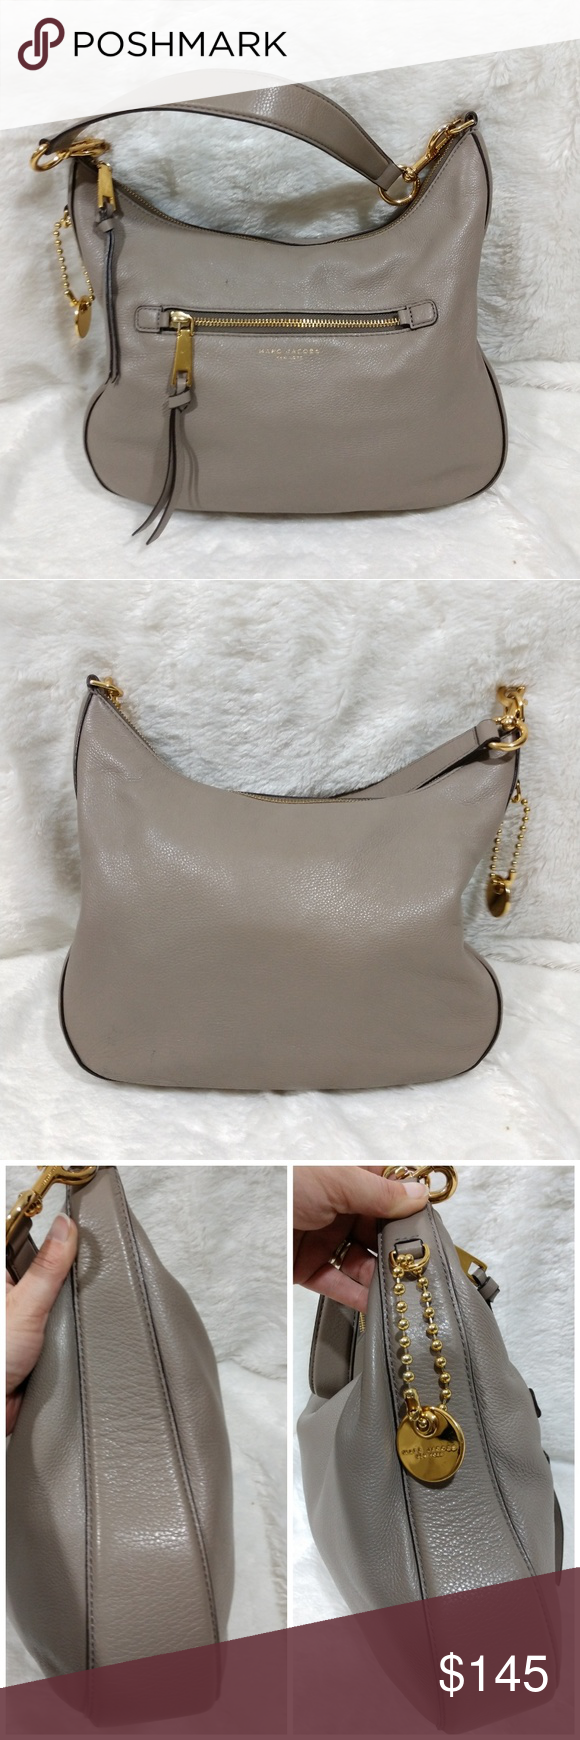 2383a1be73 🆕Marc Jacobs Taupe Hobo Bag Marc Jacobs genuine leather taupe hobo bag.  Gold hardware